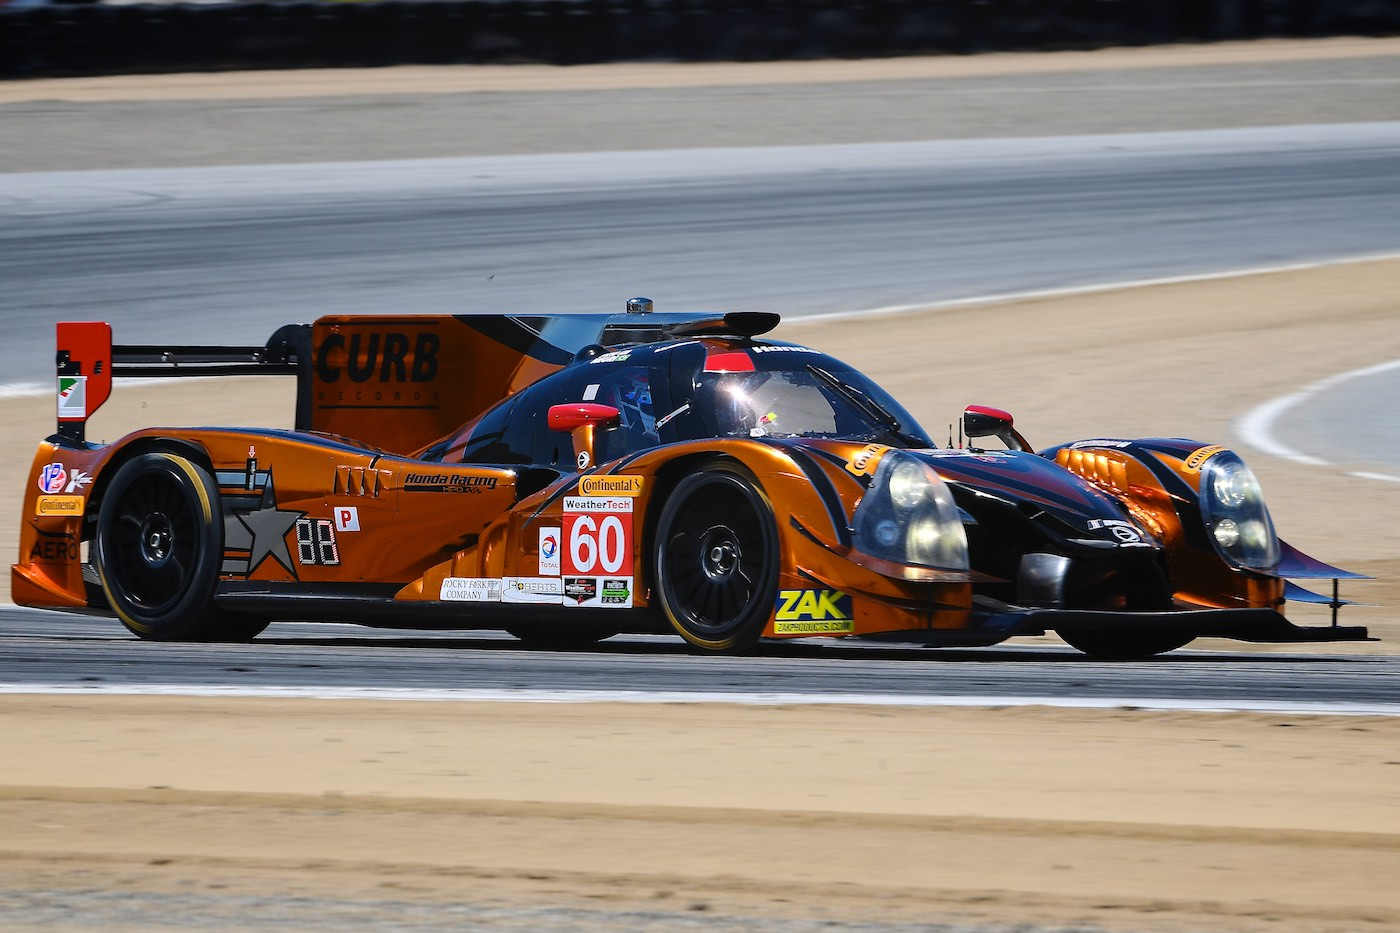 Shank's perfect Le Mans warm-up